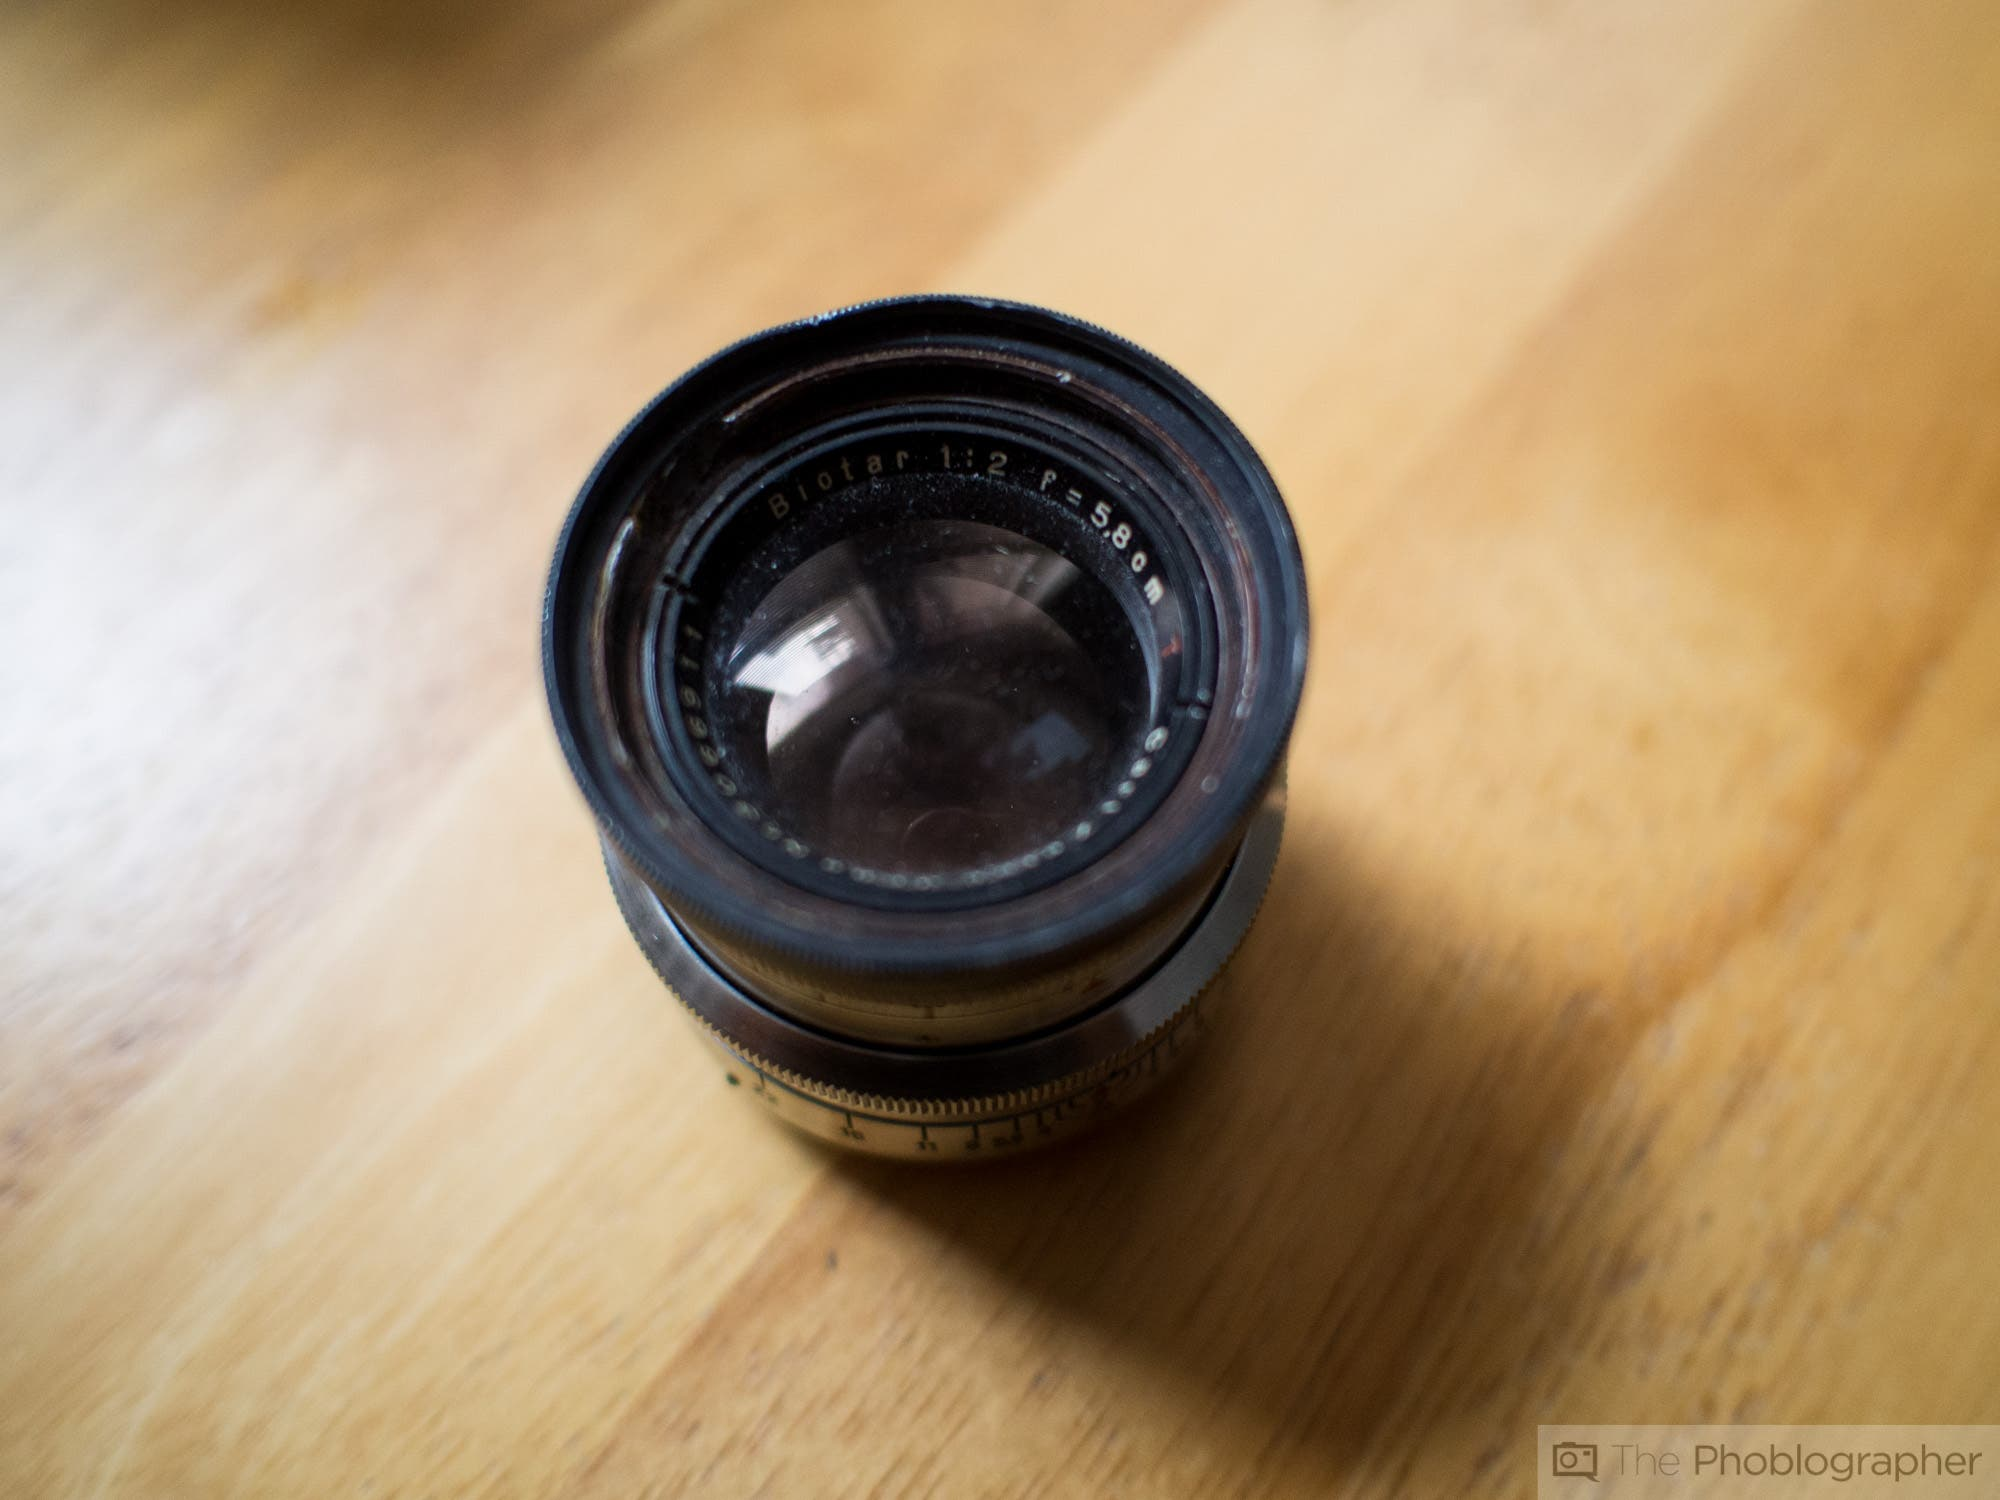 How to check the lens when buying - the main features